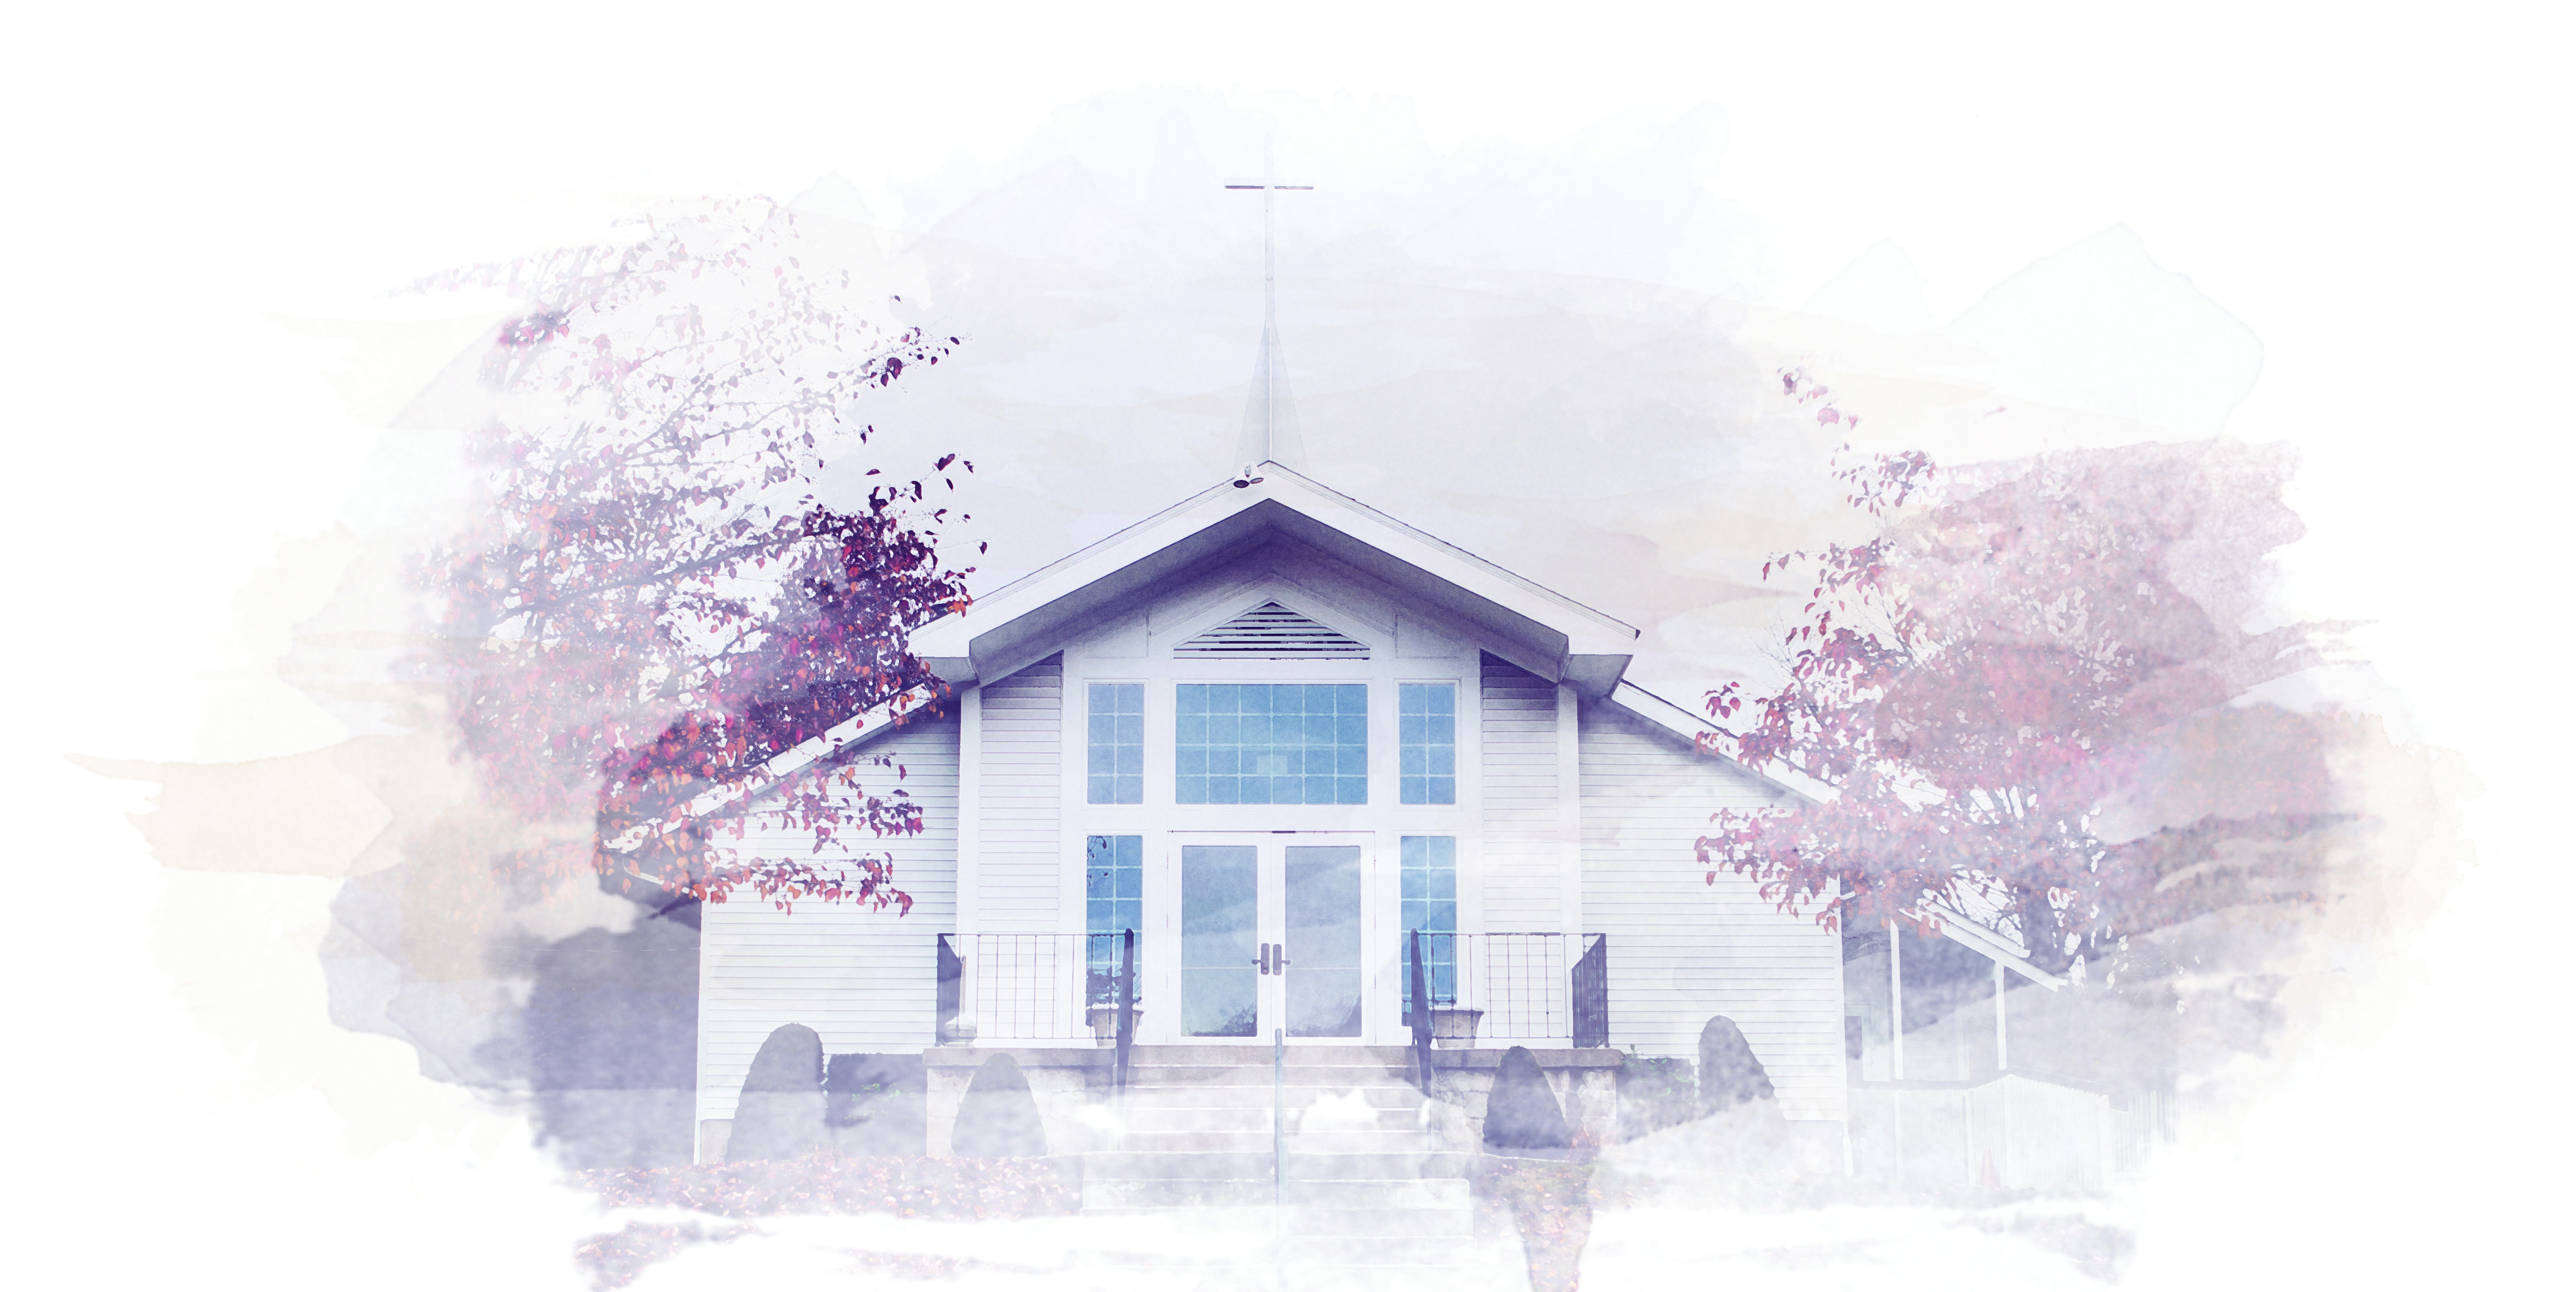 4926x2471 Artwork And Resources Church Of The Nazarene